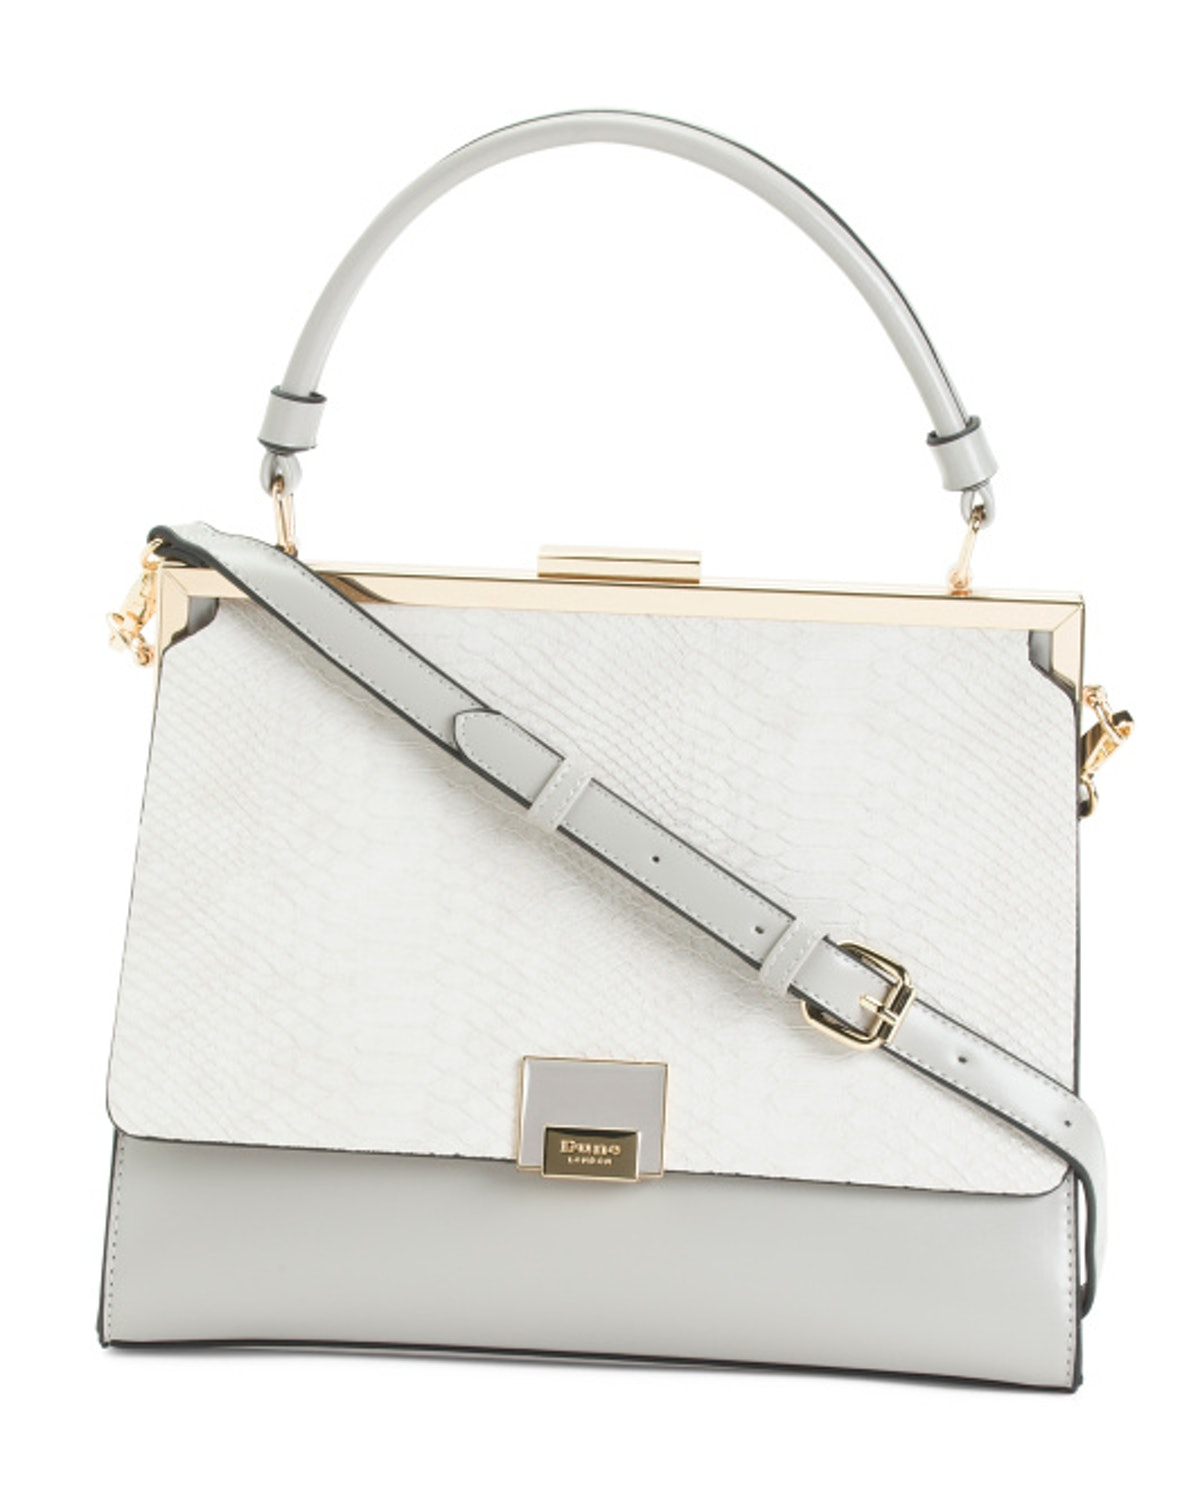 DUNE LONDON Satchel With Reptile Flap And Top Handle